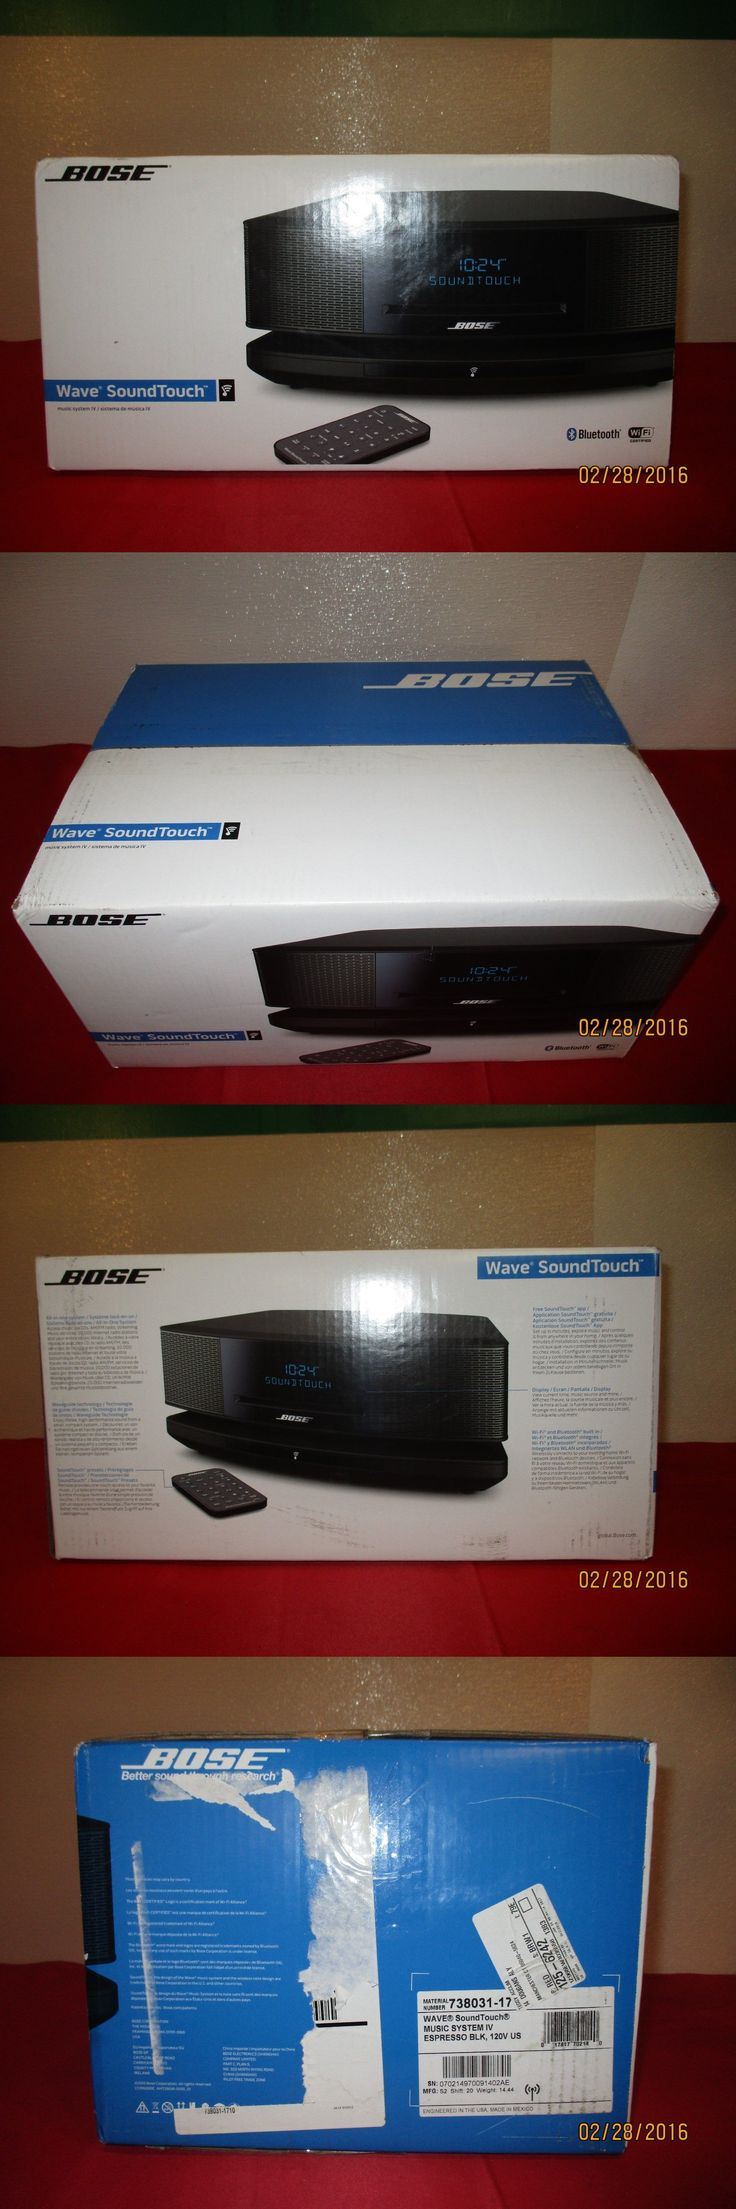 Compact and Shelf Stereos: Bose Wave Soundtouch Music System Iv- Espresso Black New In Box (S13) BUY IT NOW ONLY: $549.99